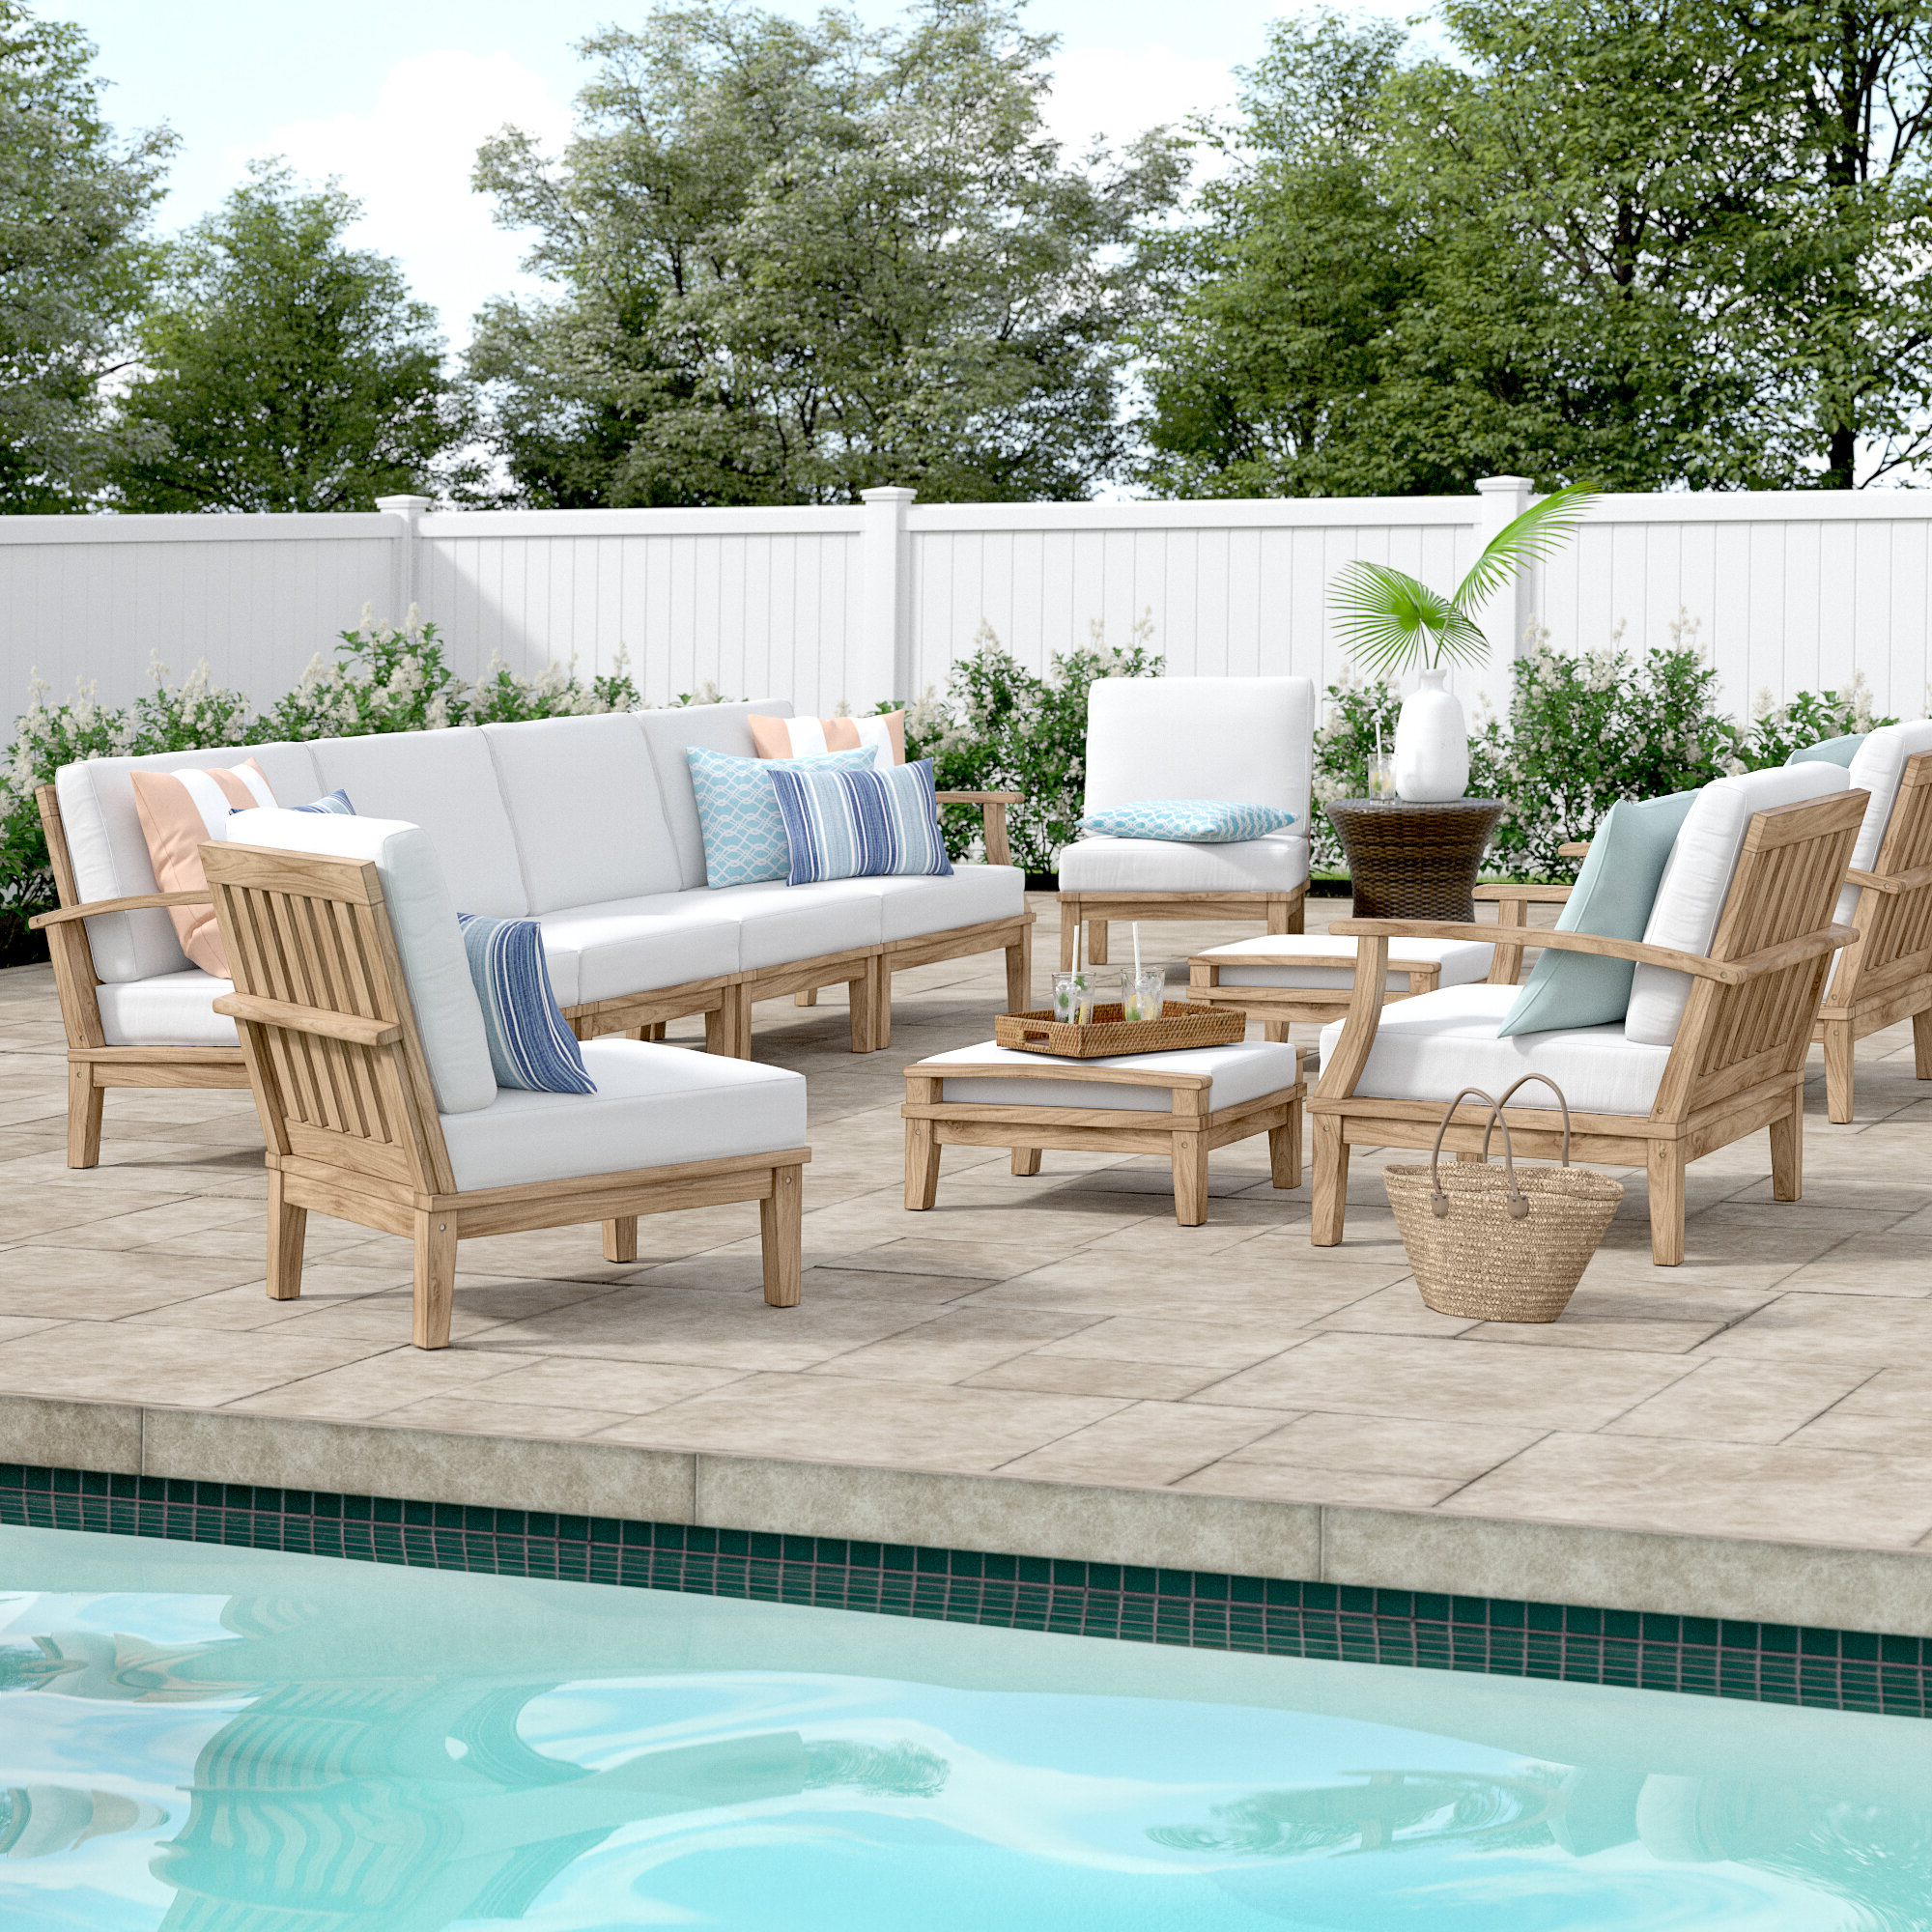 Latest Elaina Cantilever Umbrellas In Elaina 10 Piece Teak Sectional Seating Group With Cushions (Gallery 7 of 20)